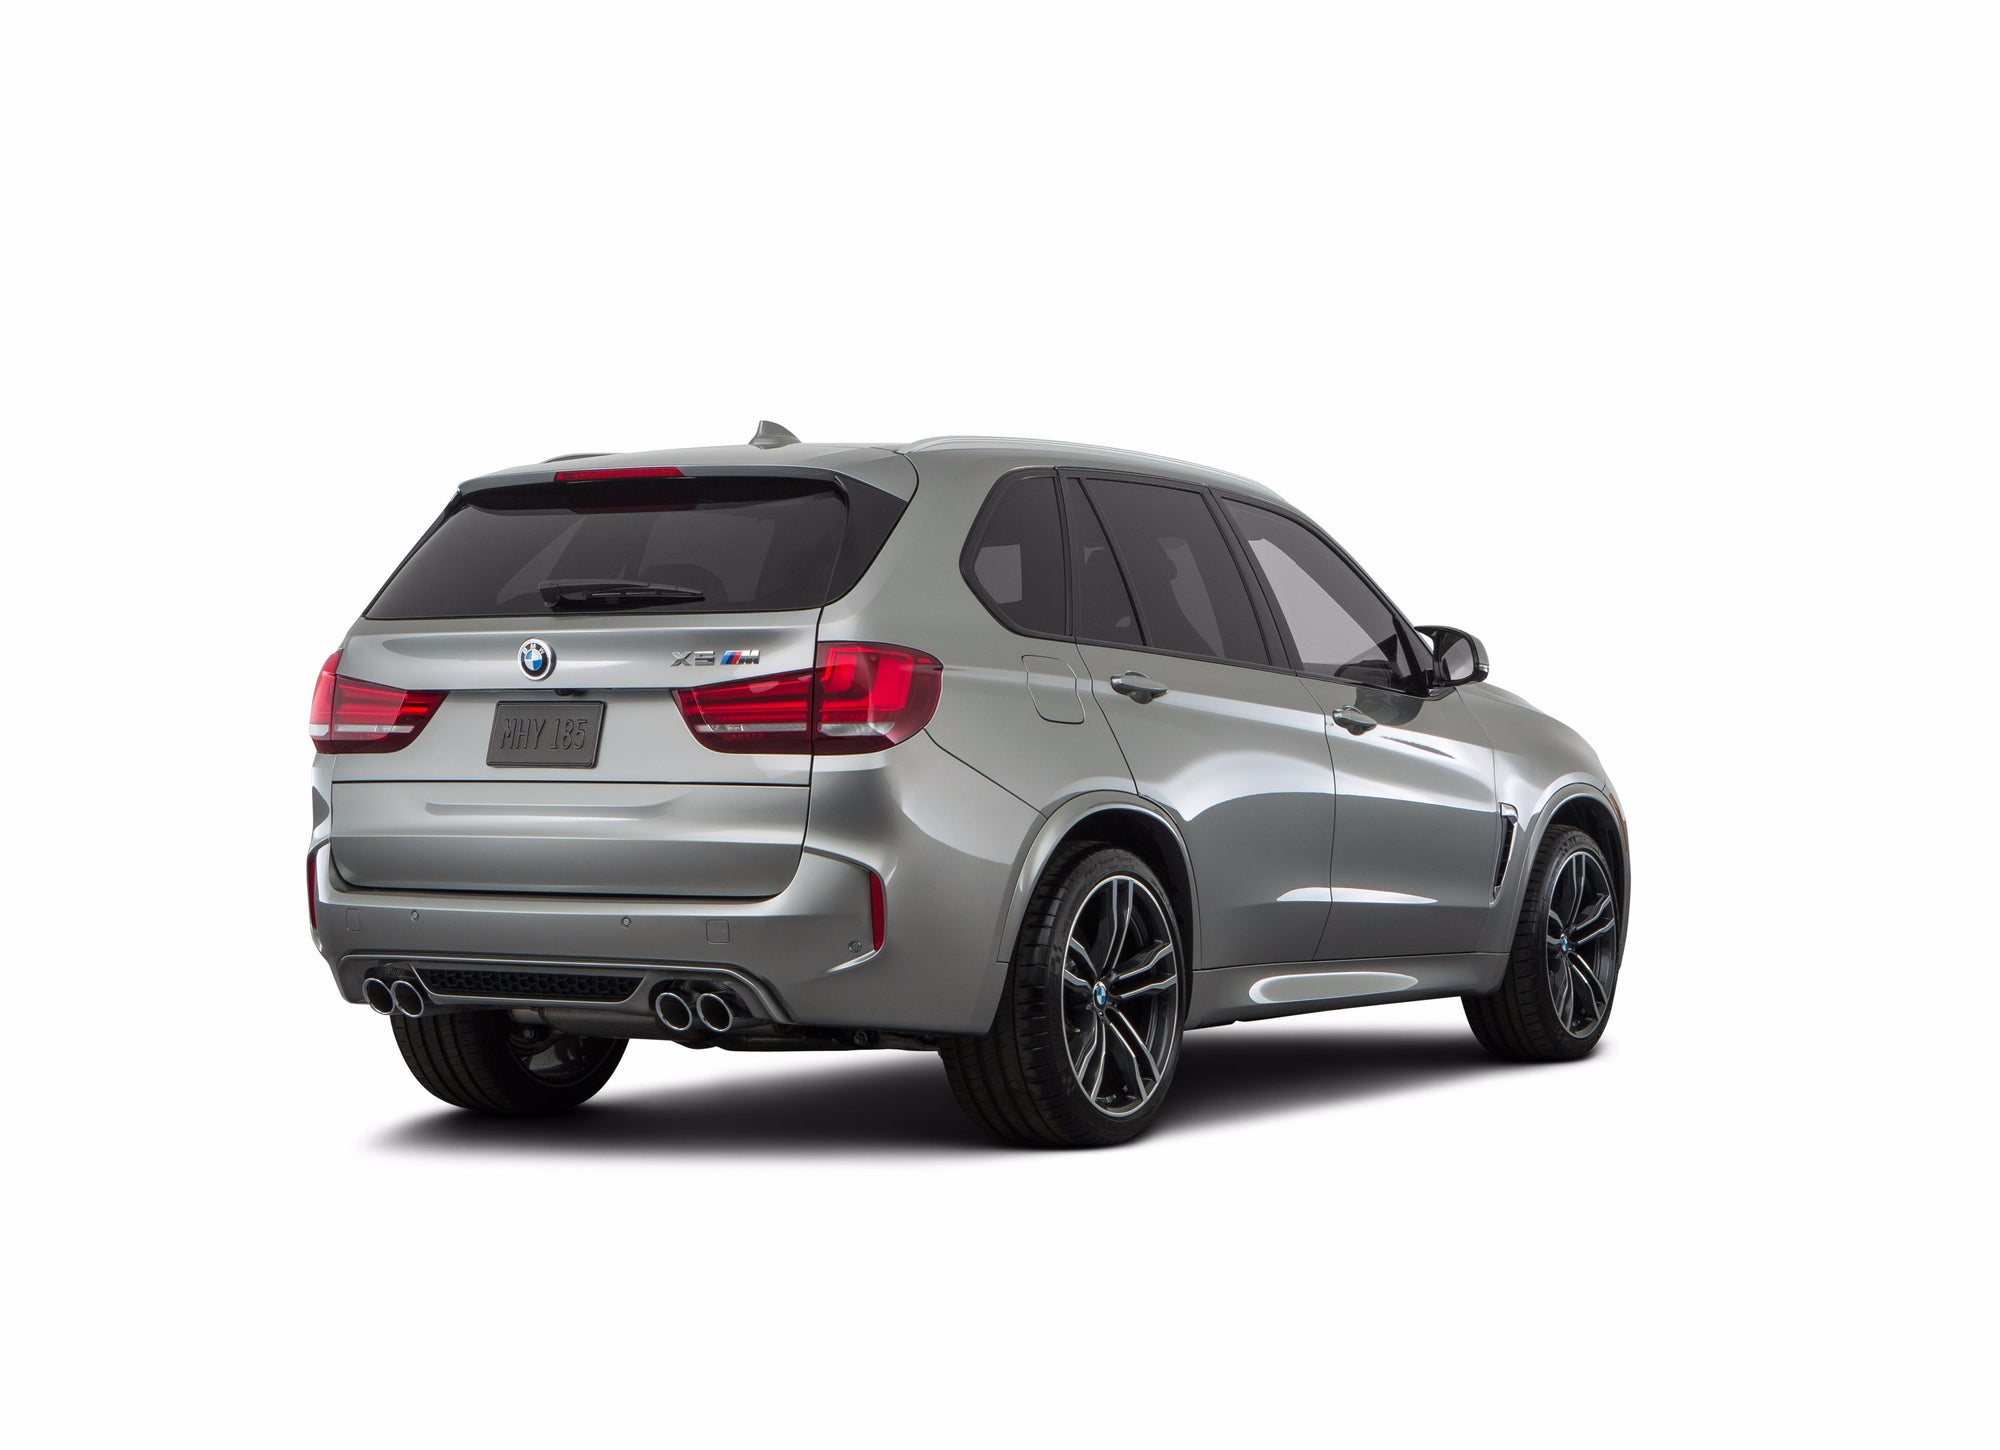 [DIAGRAM_38IS]  BMW X5 Hitch | for BMW X5 E70 | by Stealth Hitches | 2013 Bmw X5 Trailer Wiring |  | Stealth Hitches